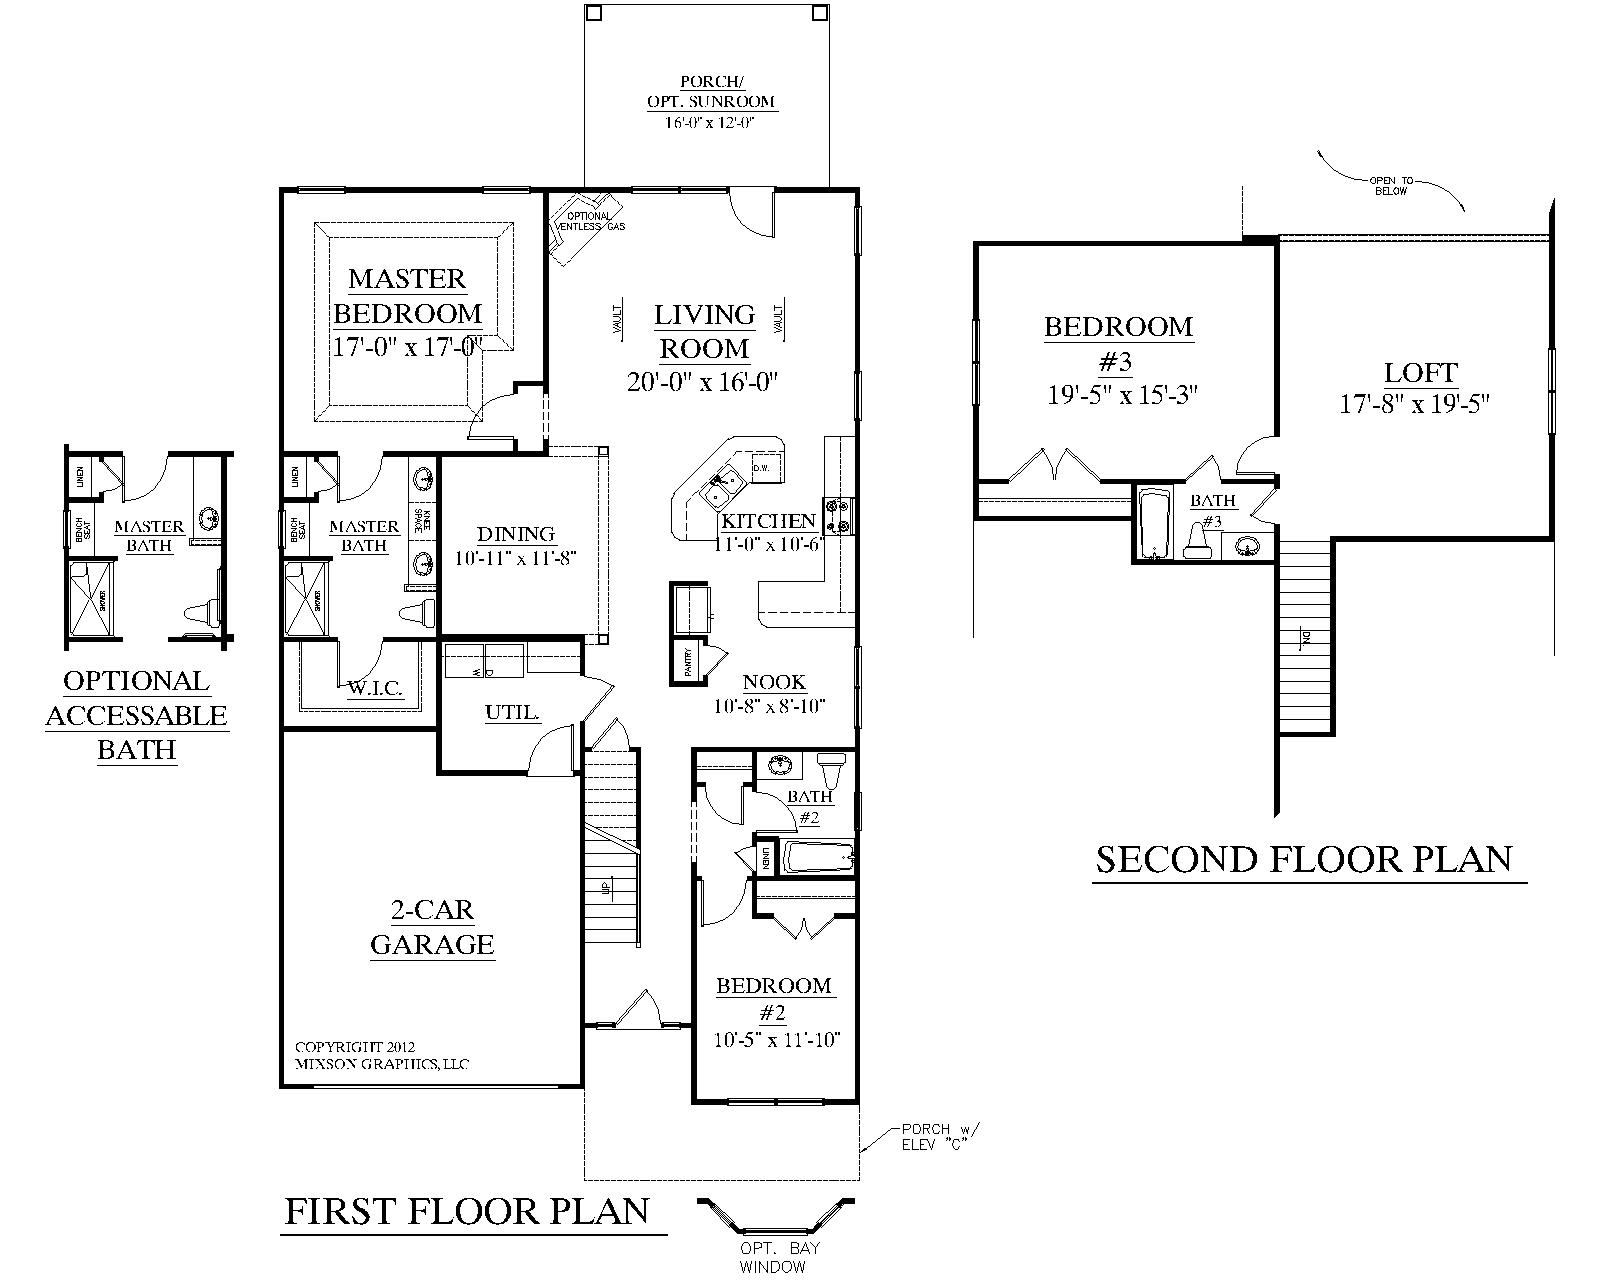 Simple 3 Bedroom House Plans 3 Bedroom House Plans with Loft